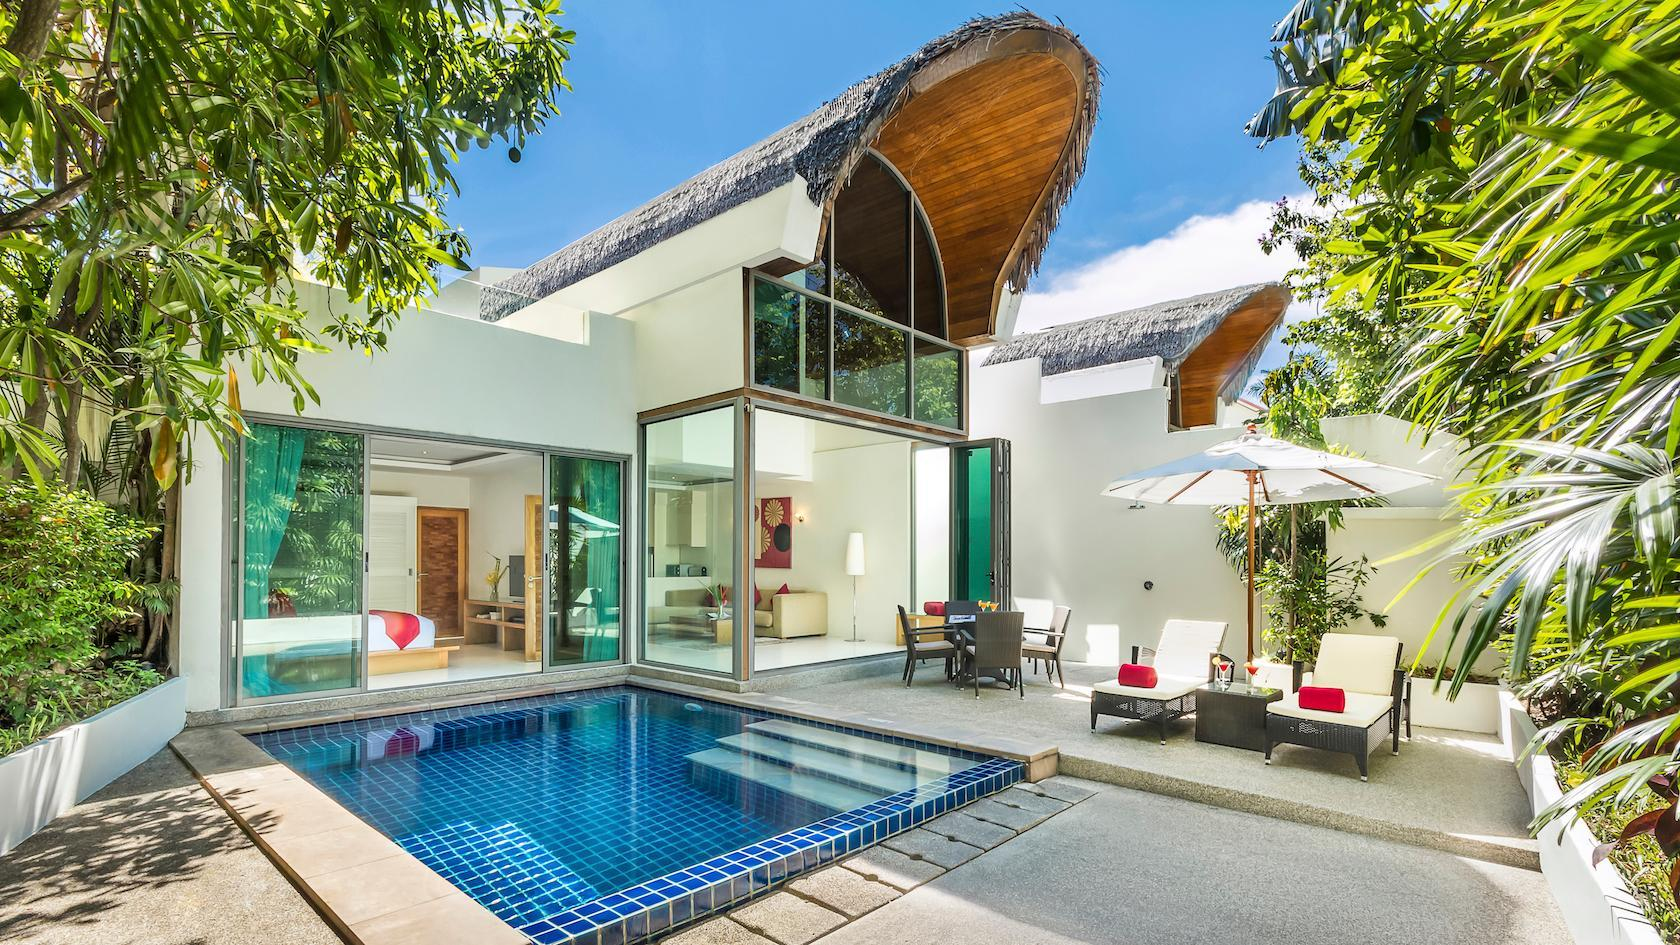 2-Bedroom Modern Villa with Pool